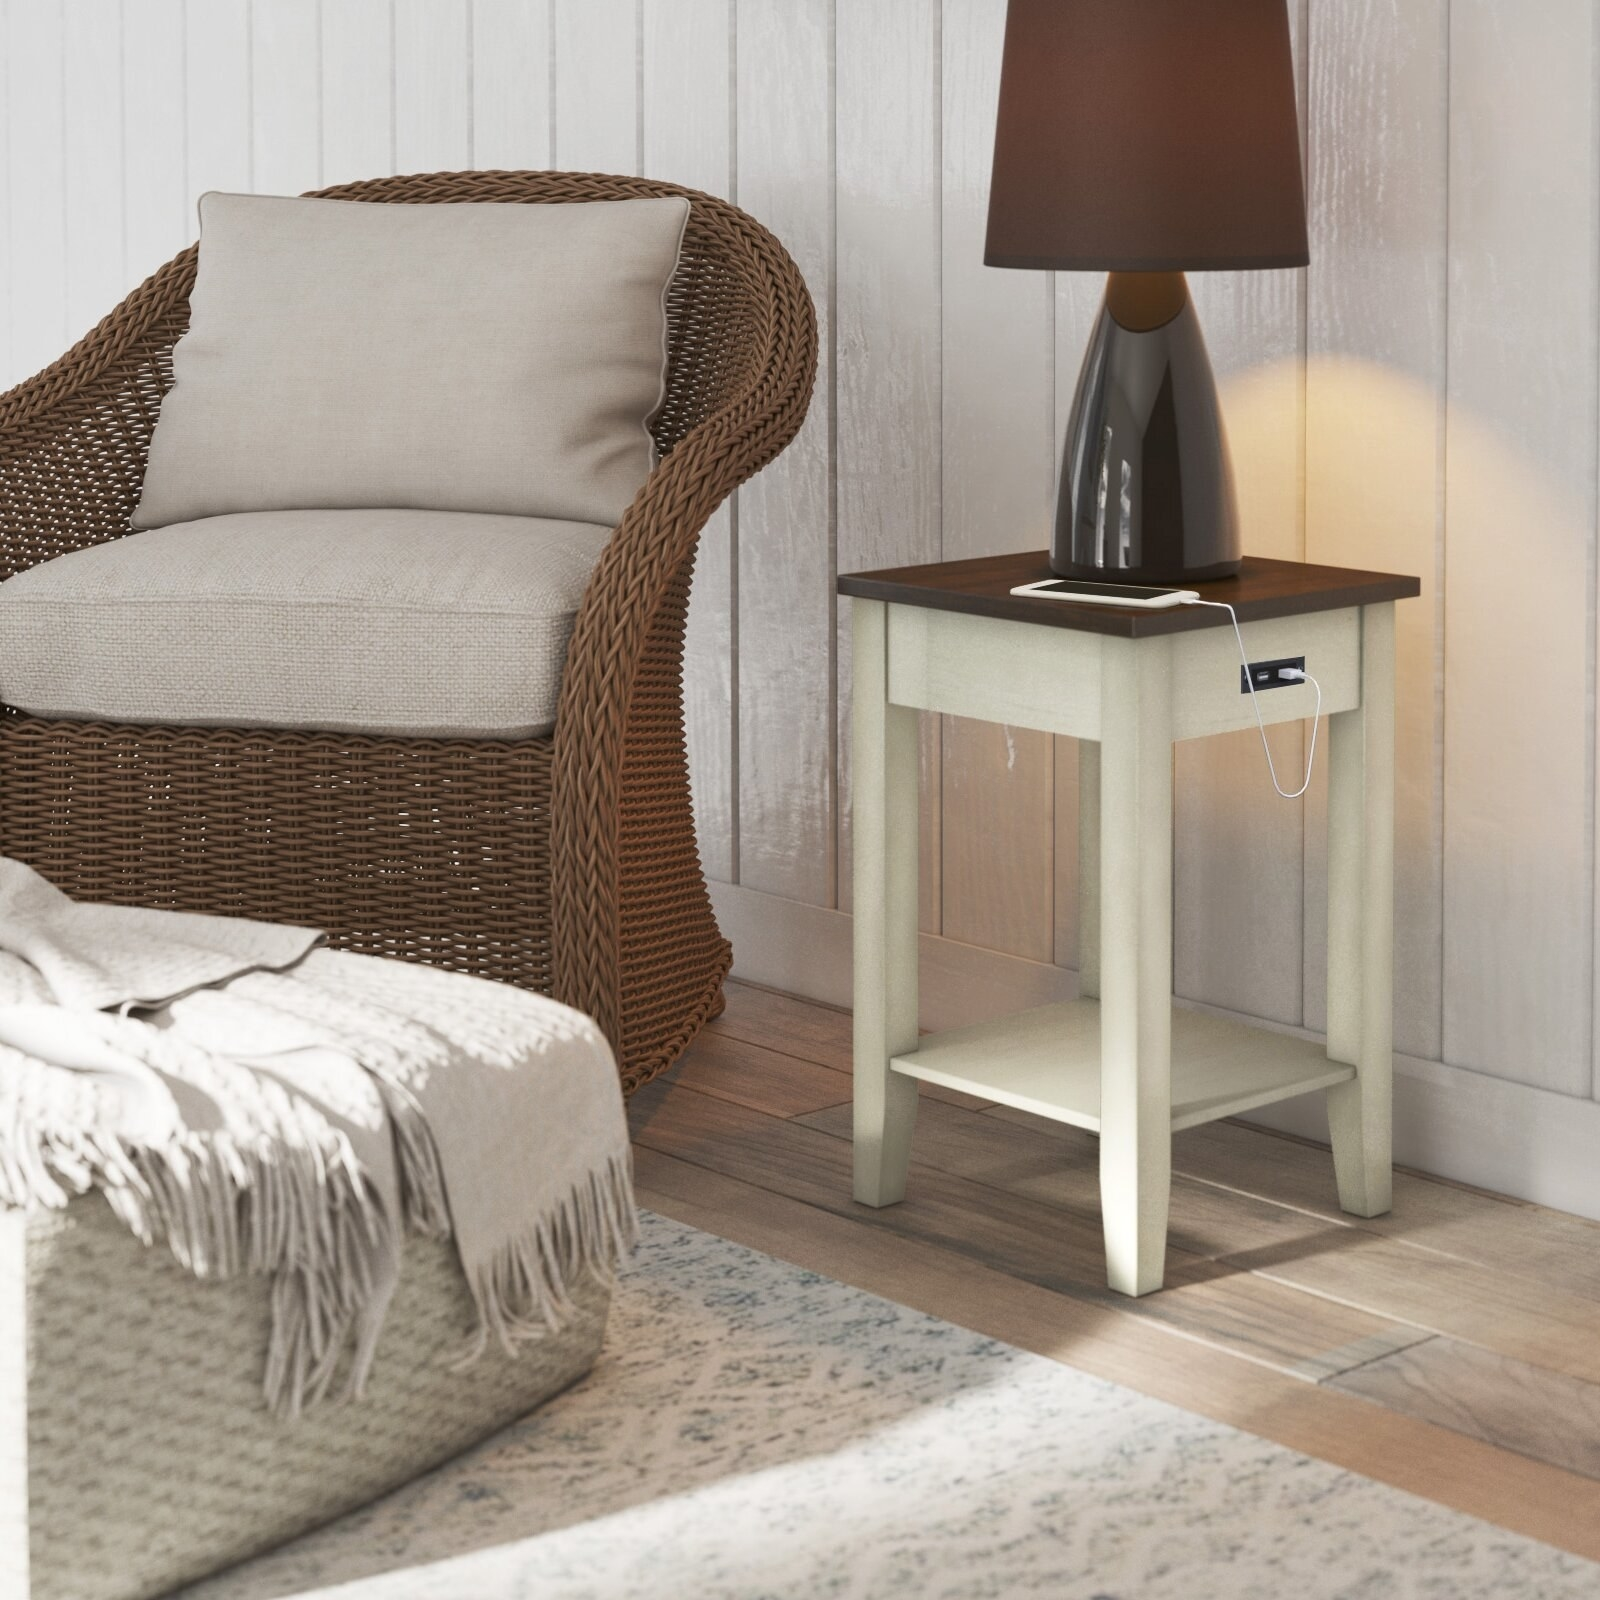 the side table in brown and white with a phone plugged into the USB port